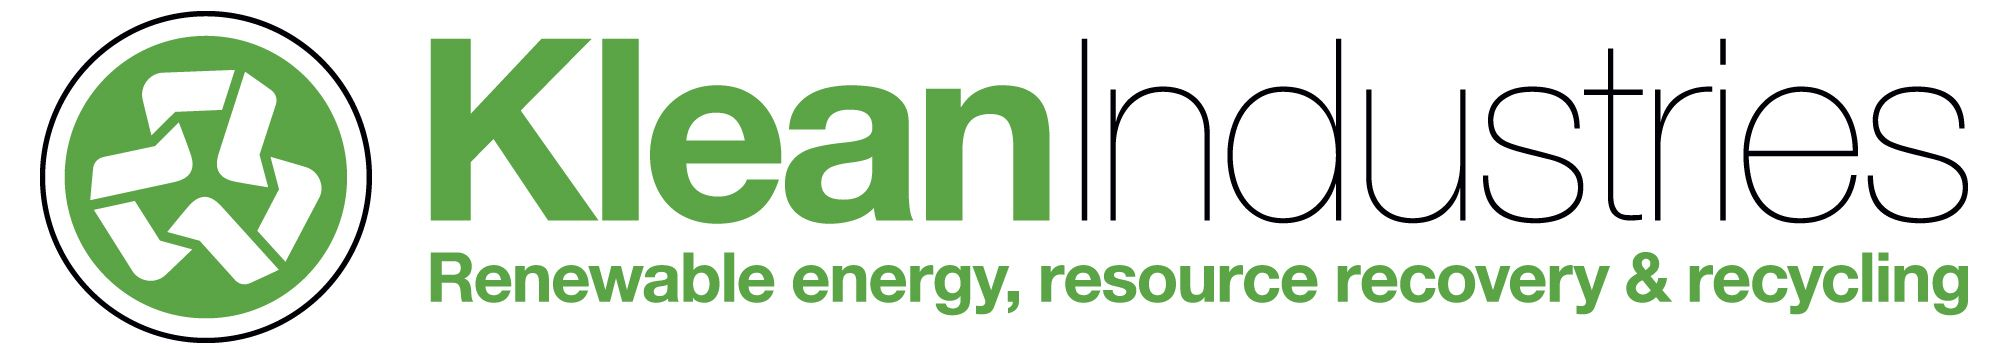 New Oil Discovery: Klean Finds Never Ending Renewable Oil Fields